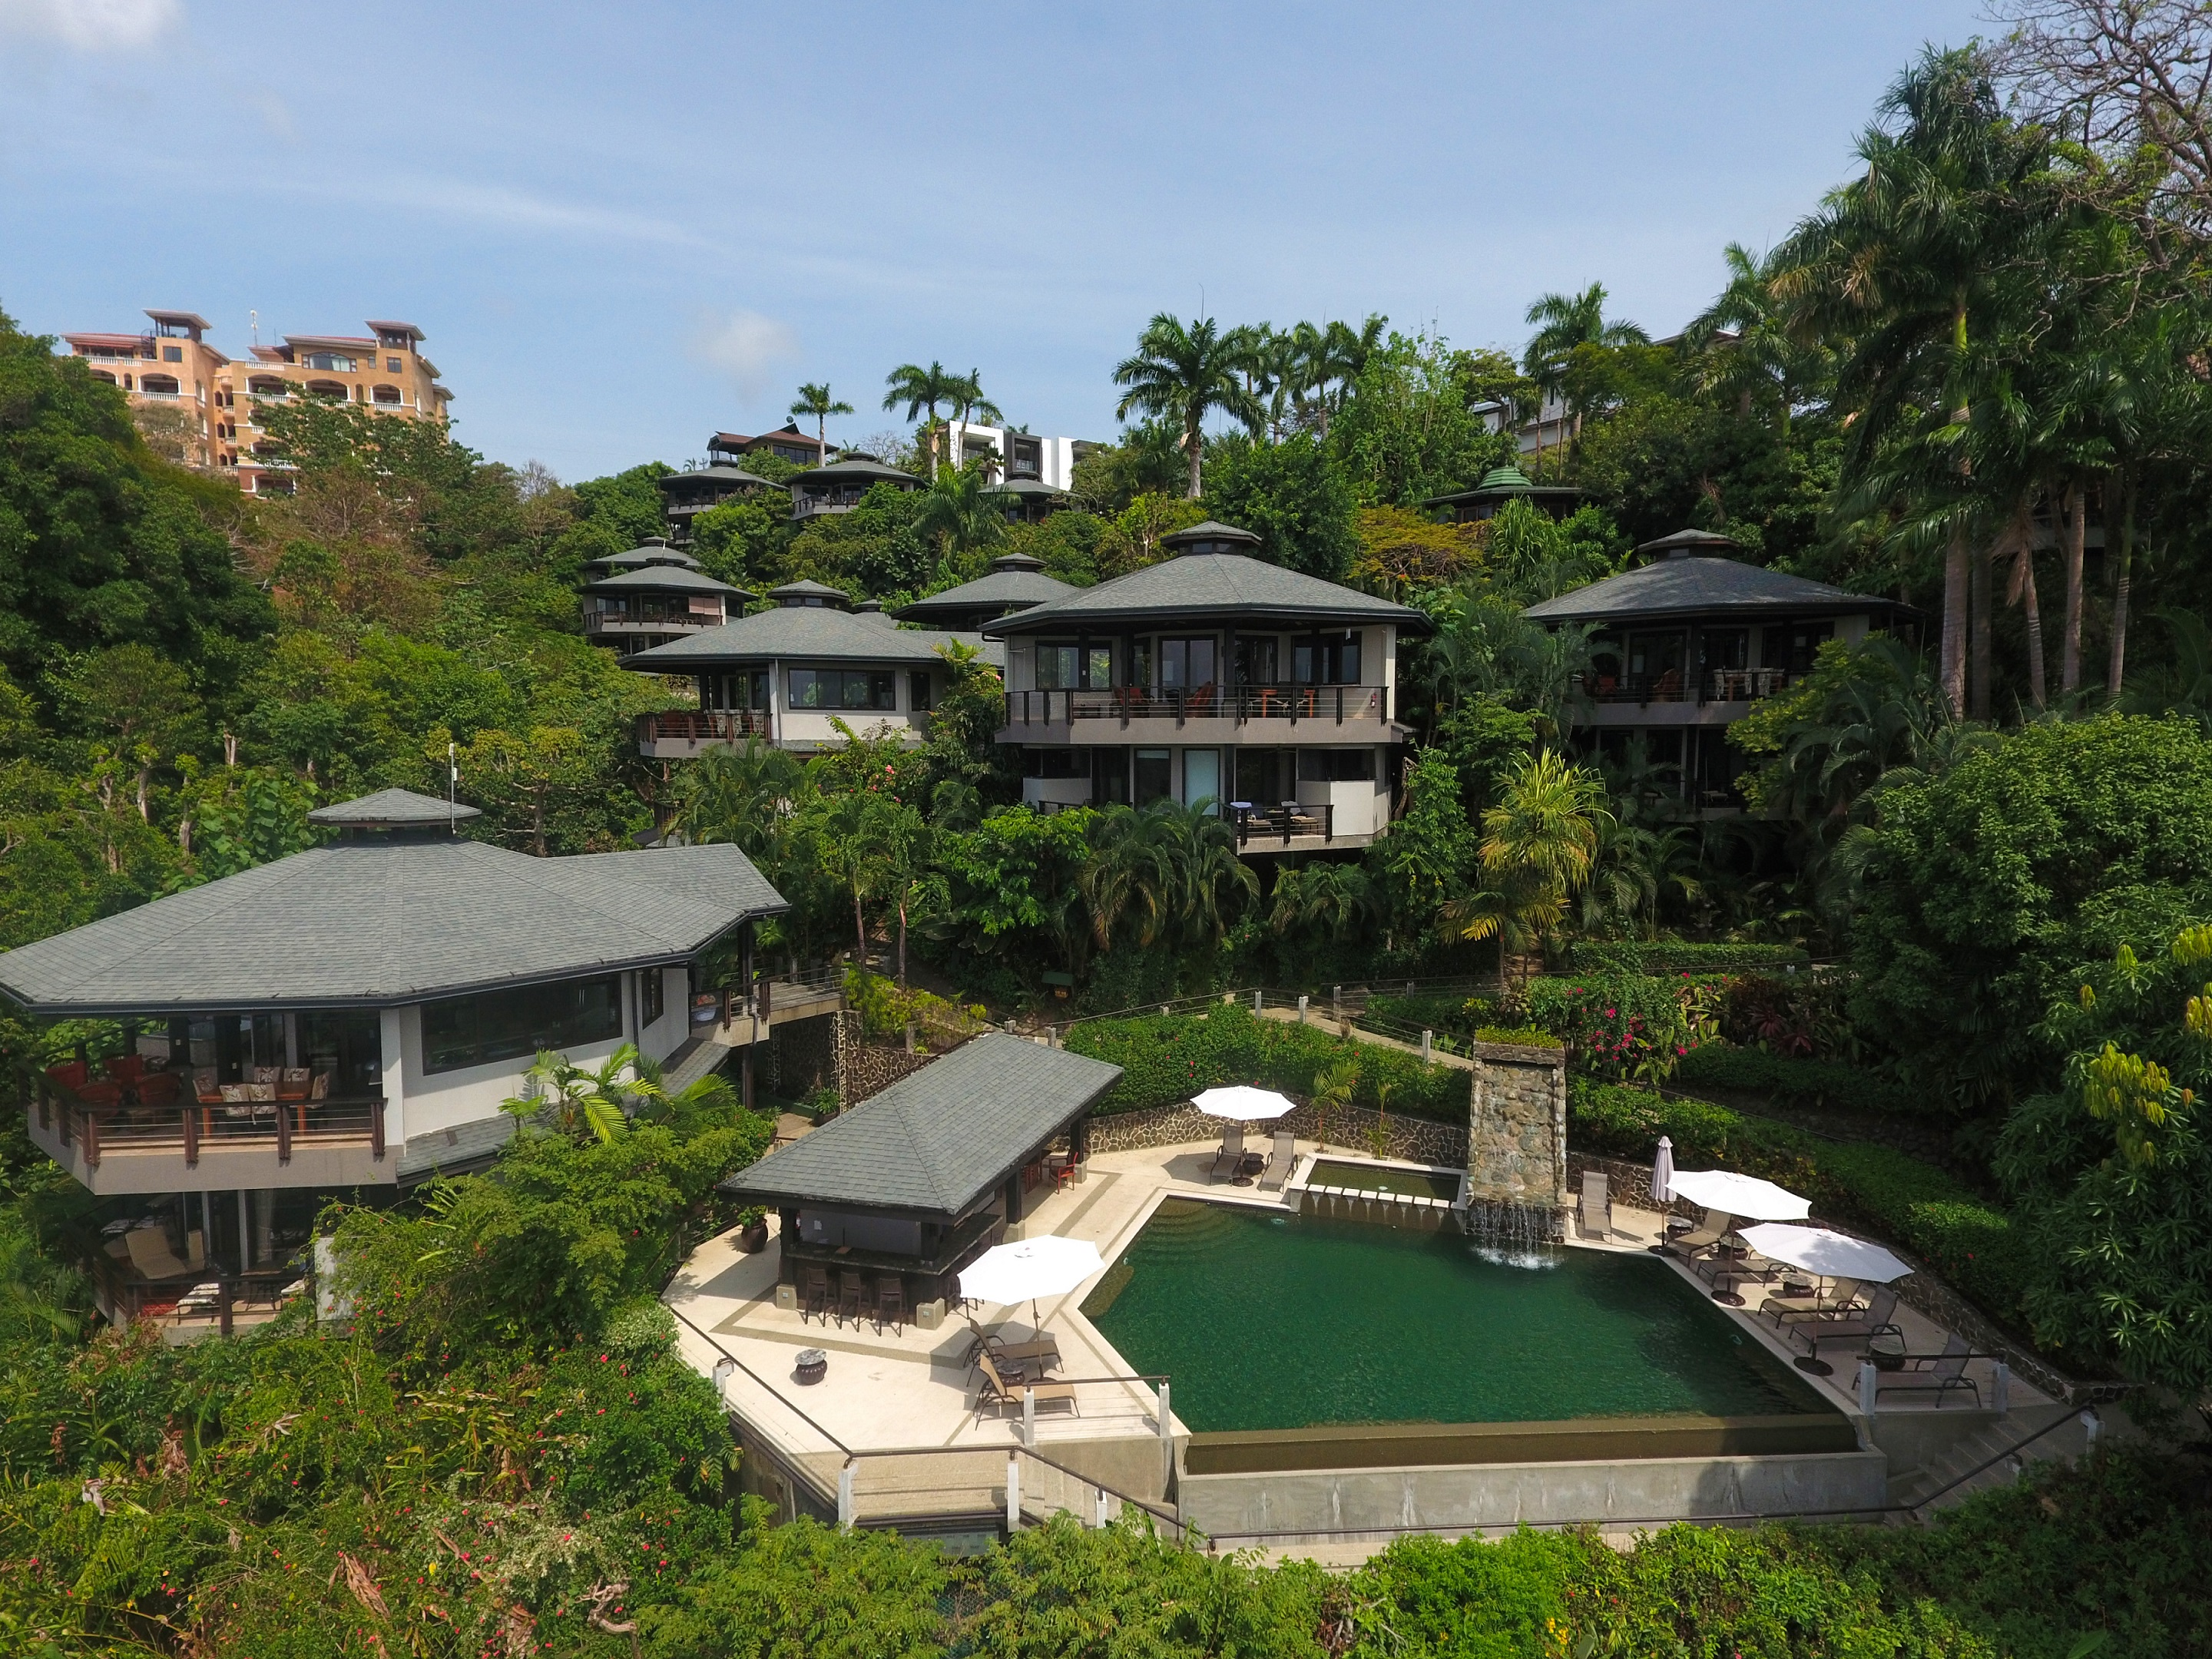 Tripadvisor Rates Costa Rica Resort 2 Hotel In The World